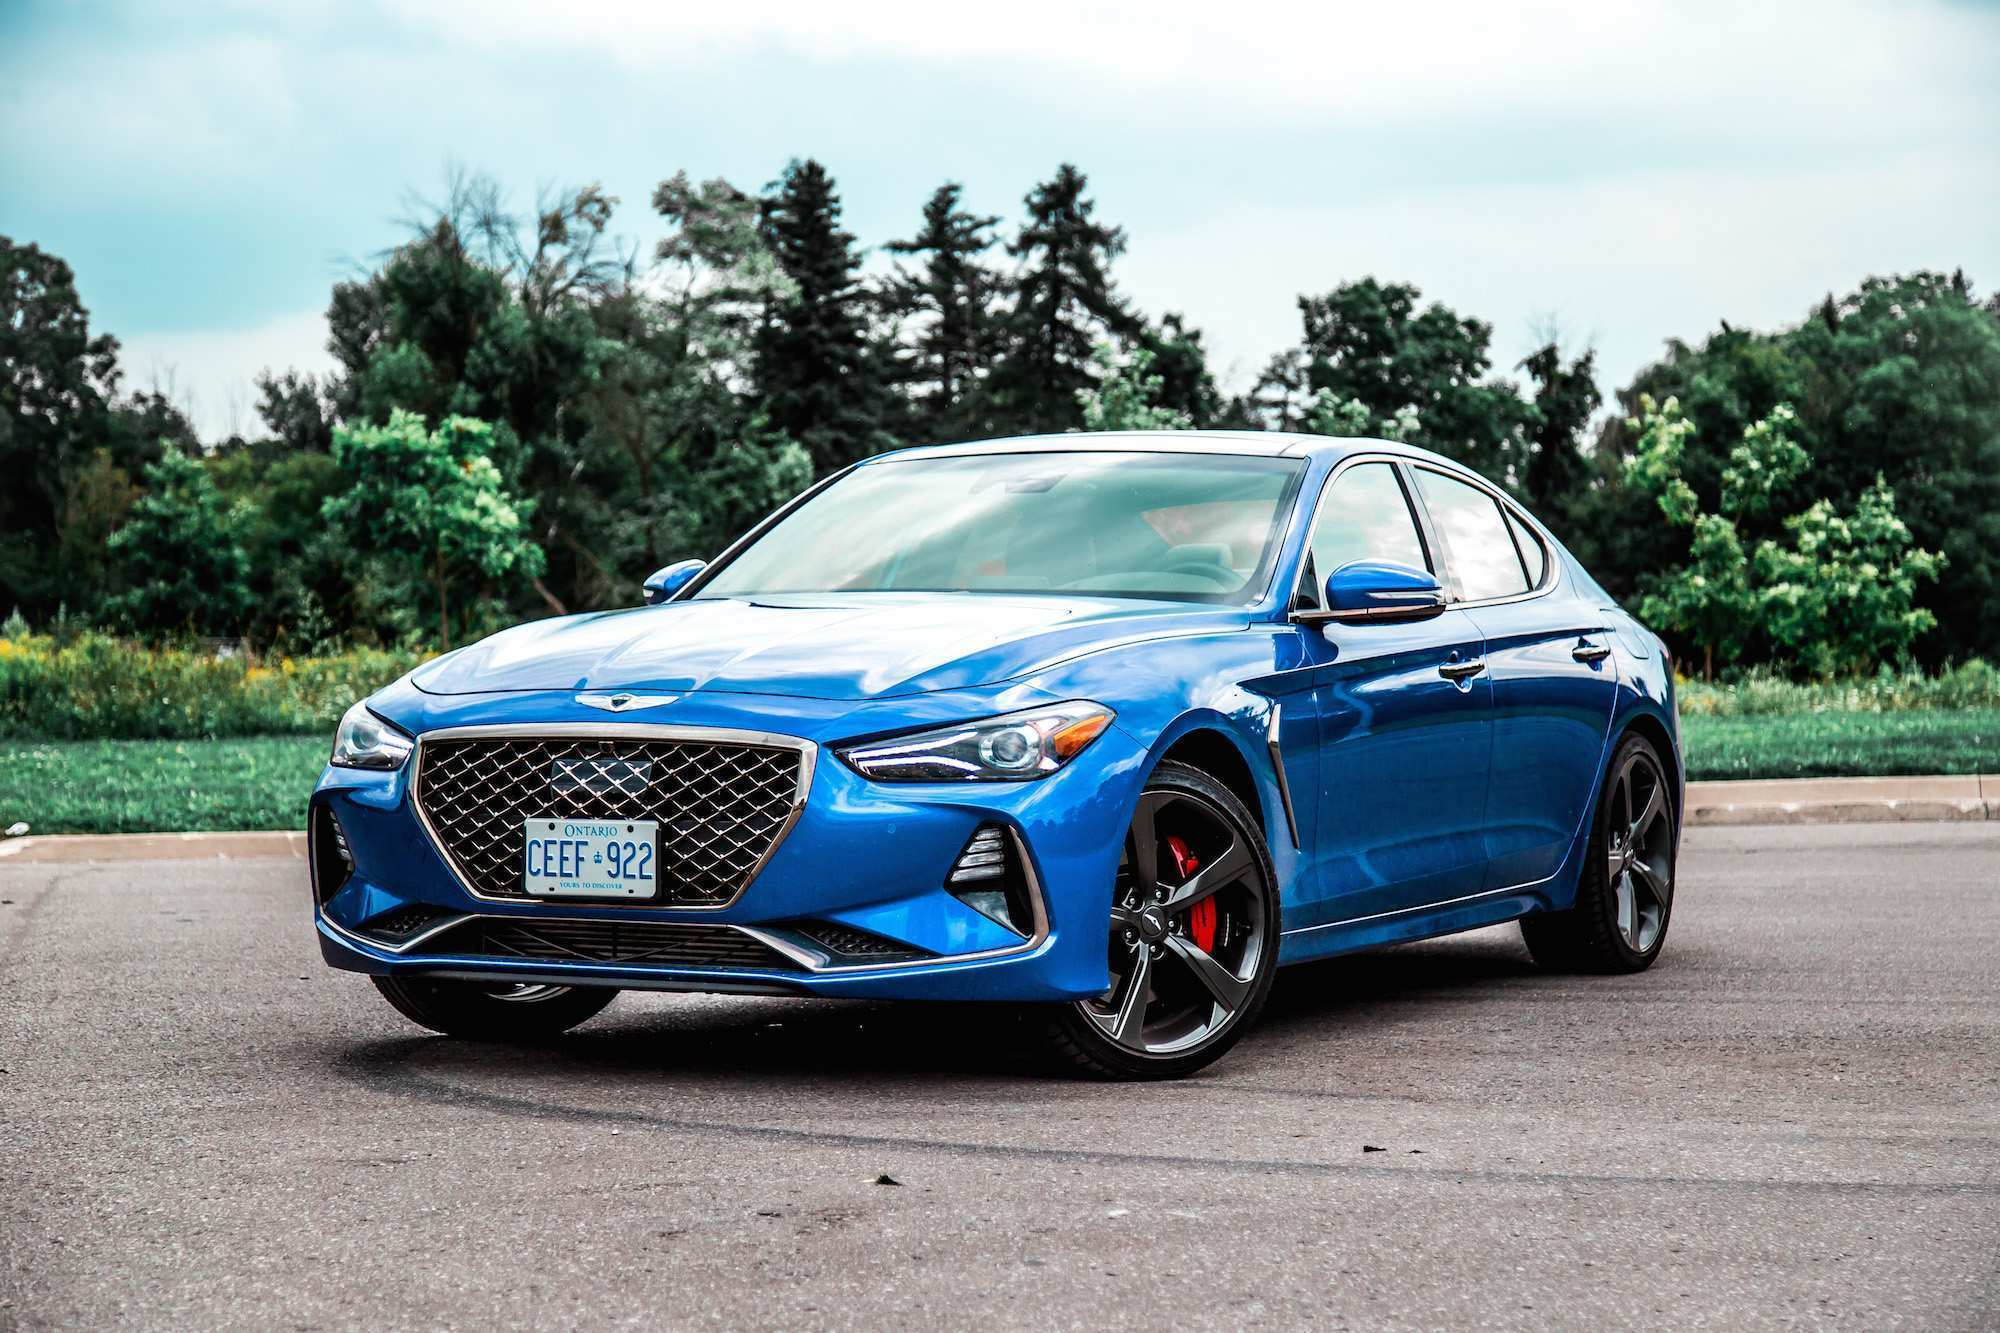 87 Great 2019 Genesis G70 Review Images with 2019 Genesis G70 Review